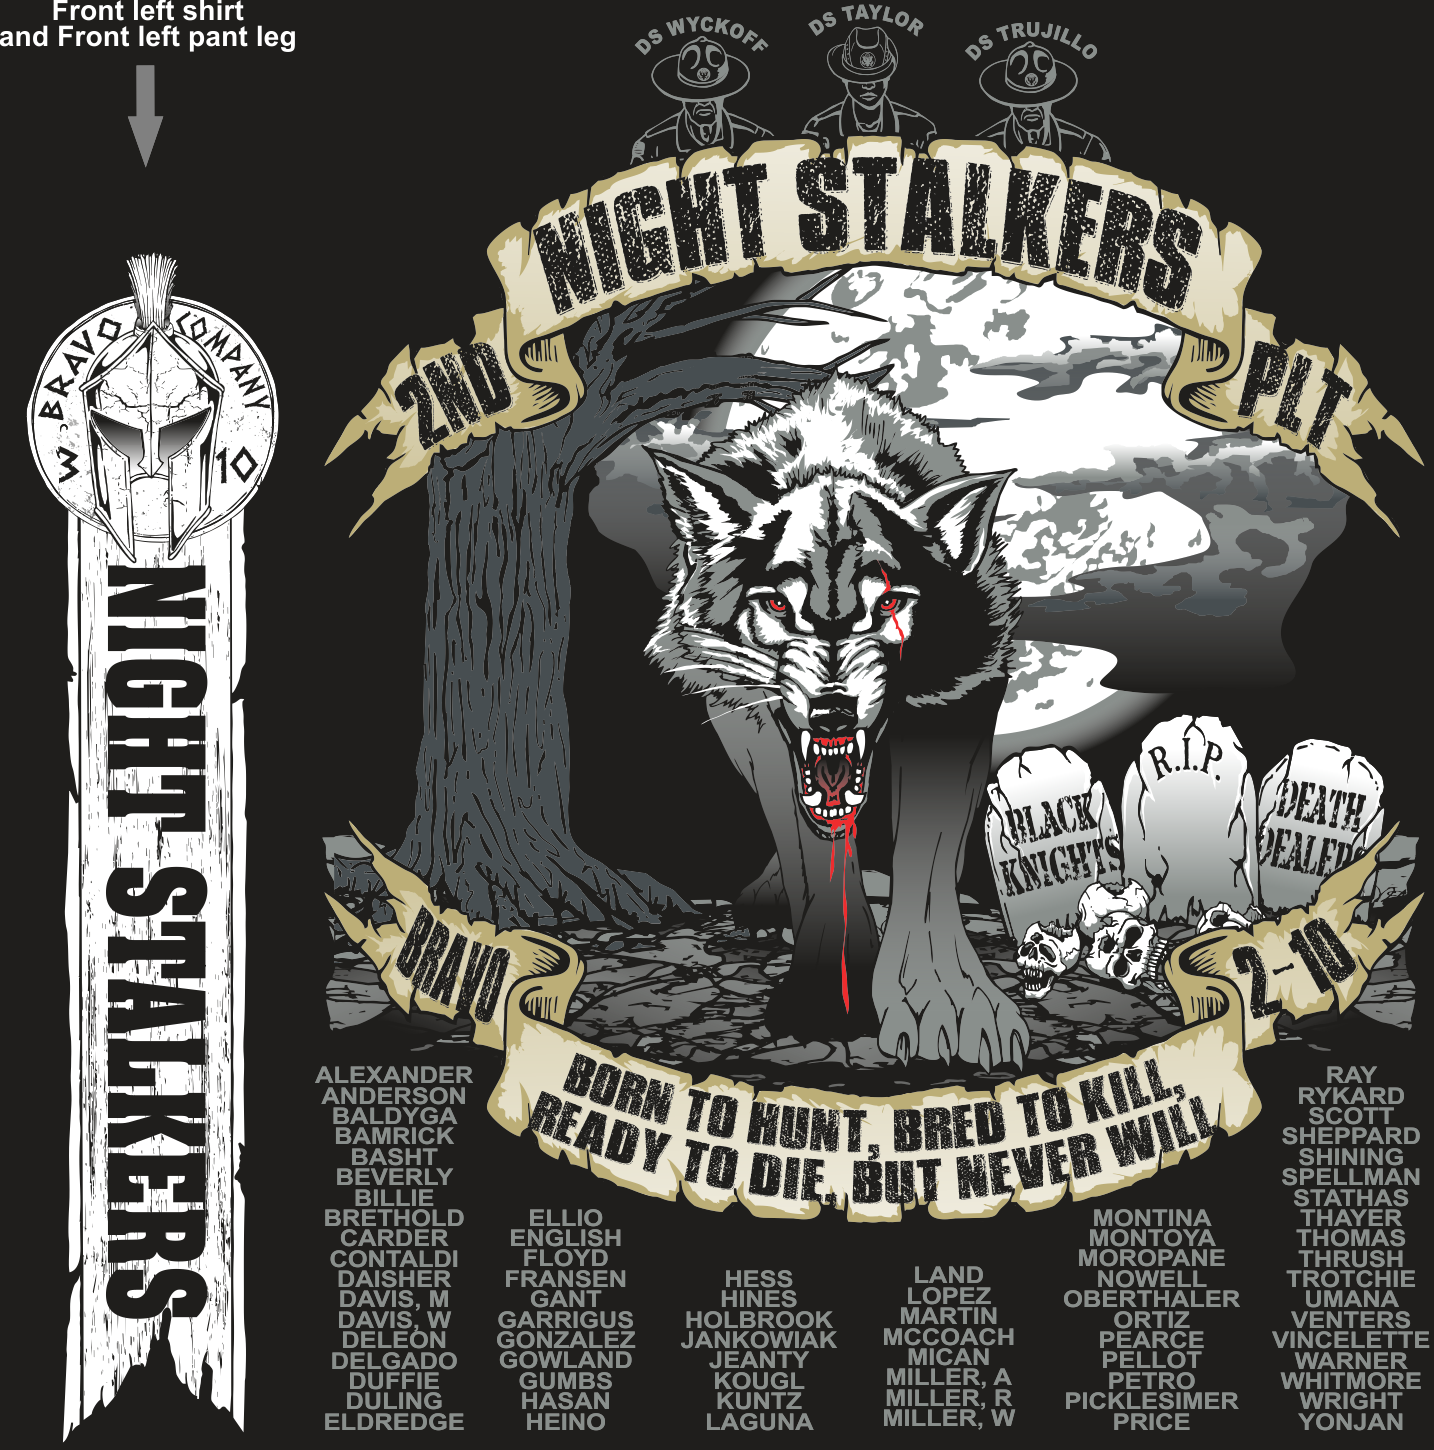 BRAVO 3-10 NIGHT STALKERS GRADUATING DAY 9-15-2016 digital